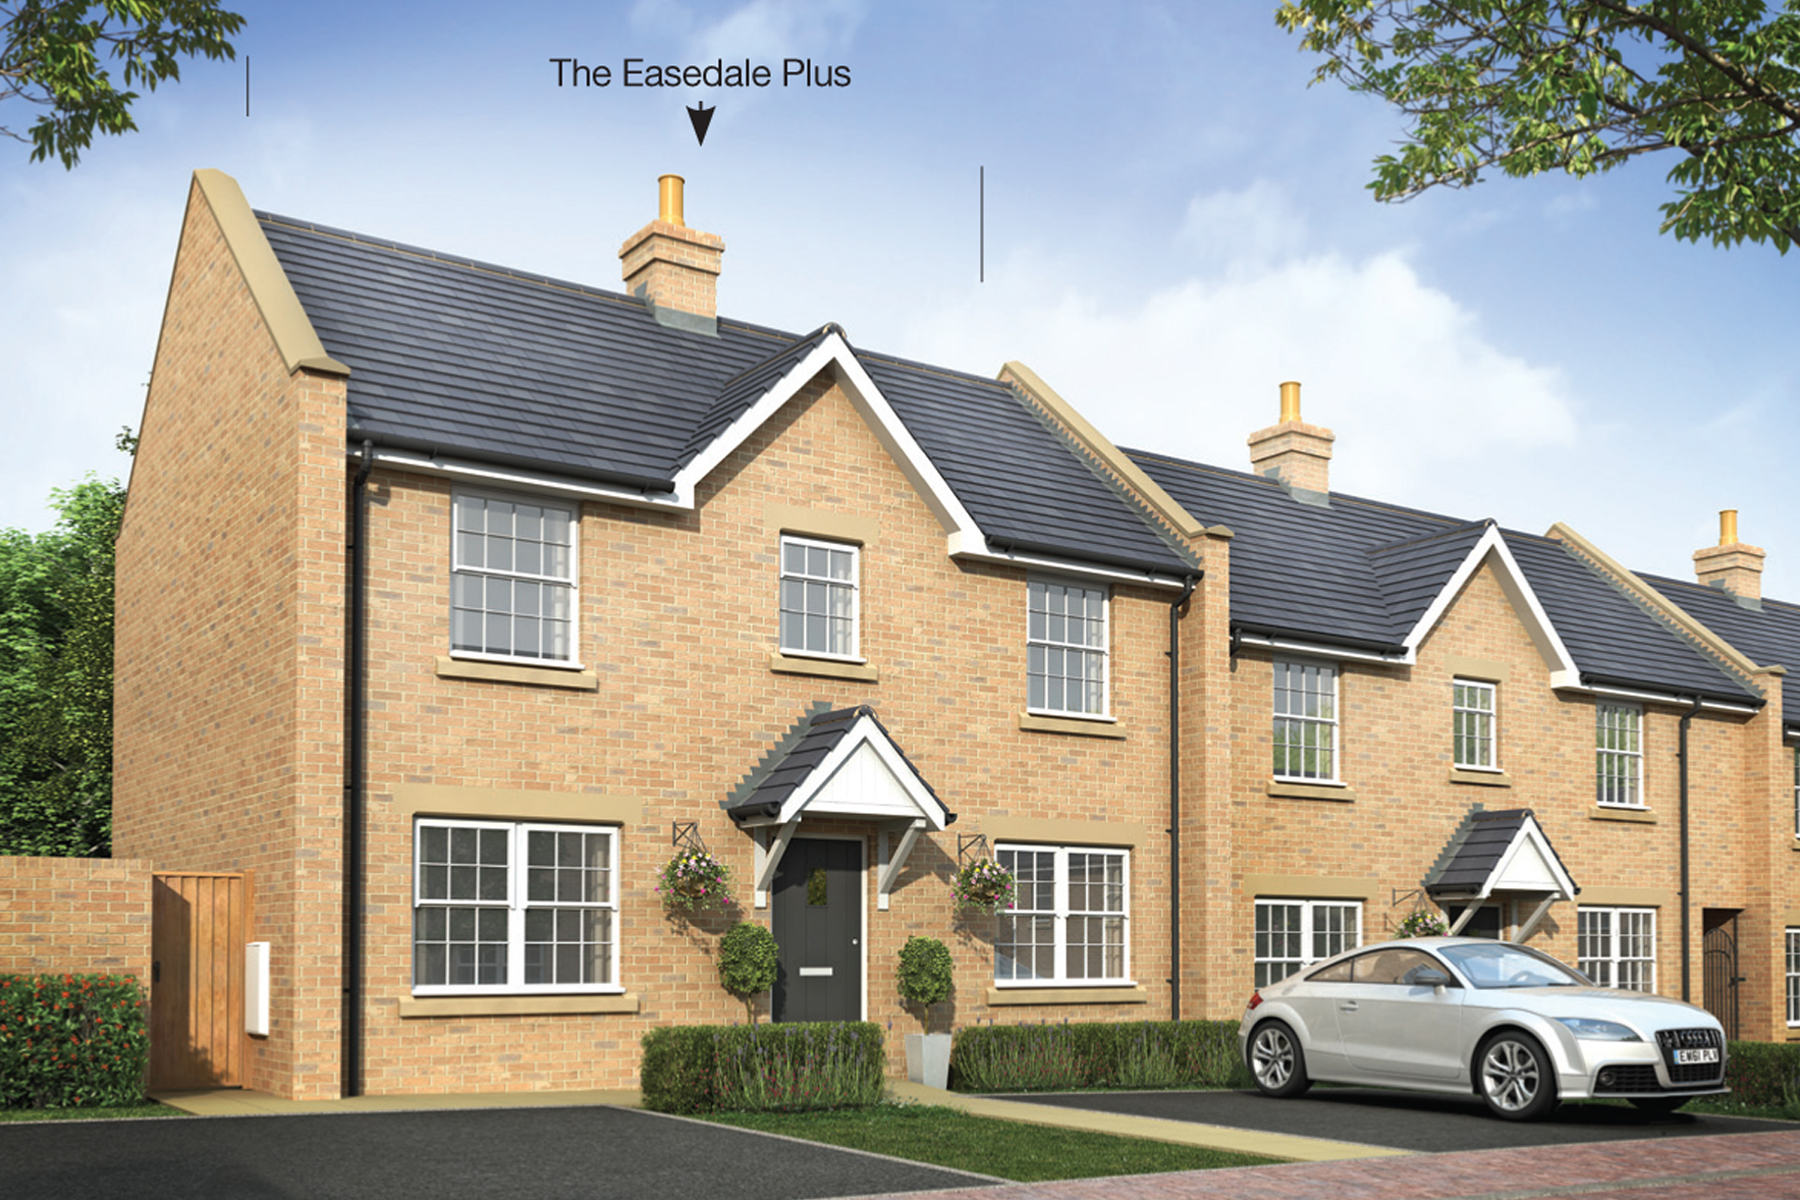 The Easedale Plus three bedroom home